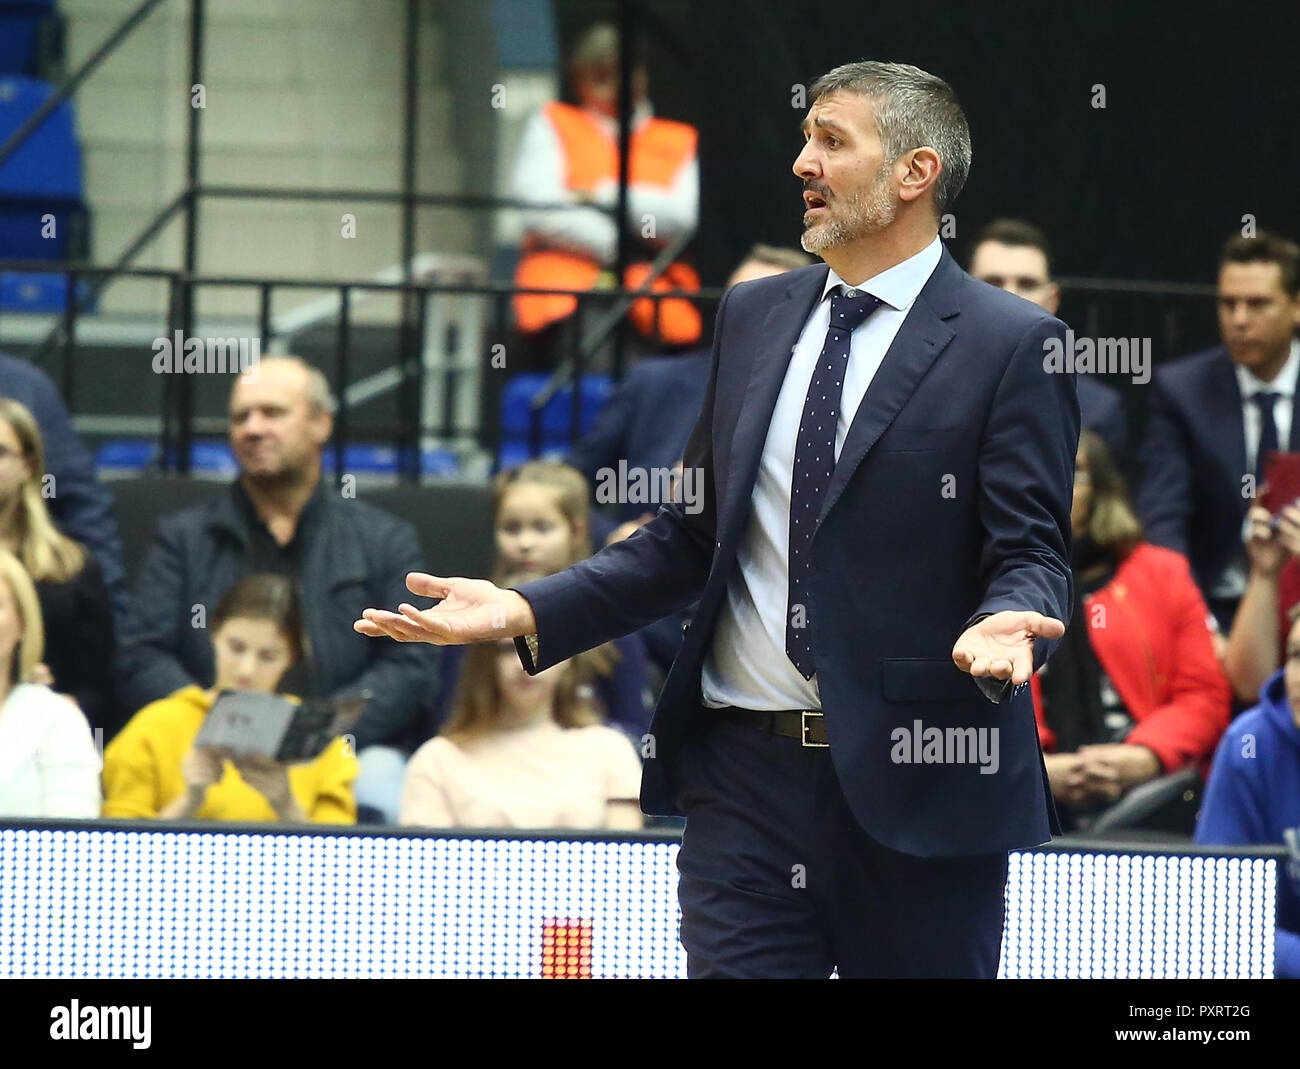 Javier Juarez coach of UCAM seen during the game. Basketball Champions League: BC Nizhny Novgorod (BCNN) from Russia vs Ucam Murcia Club Baloncesto (UCAM) from Spain. The game ended with the score 51: 72. Stock Photo